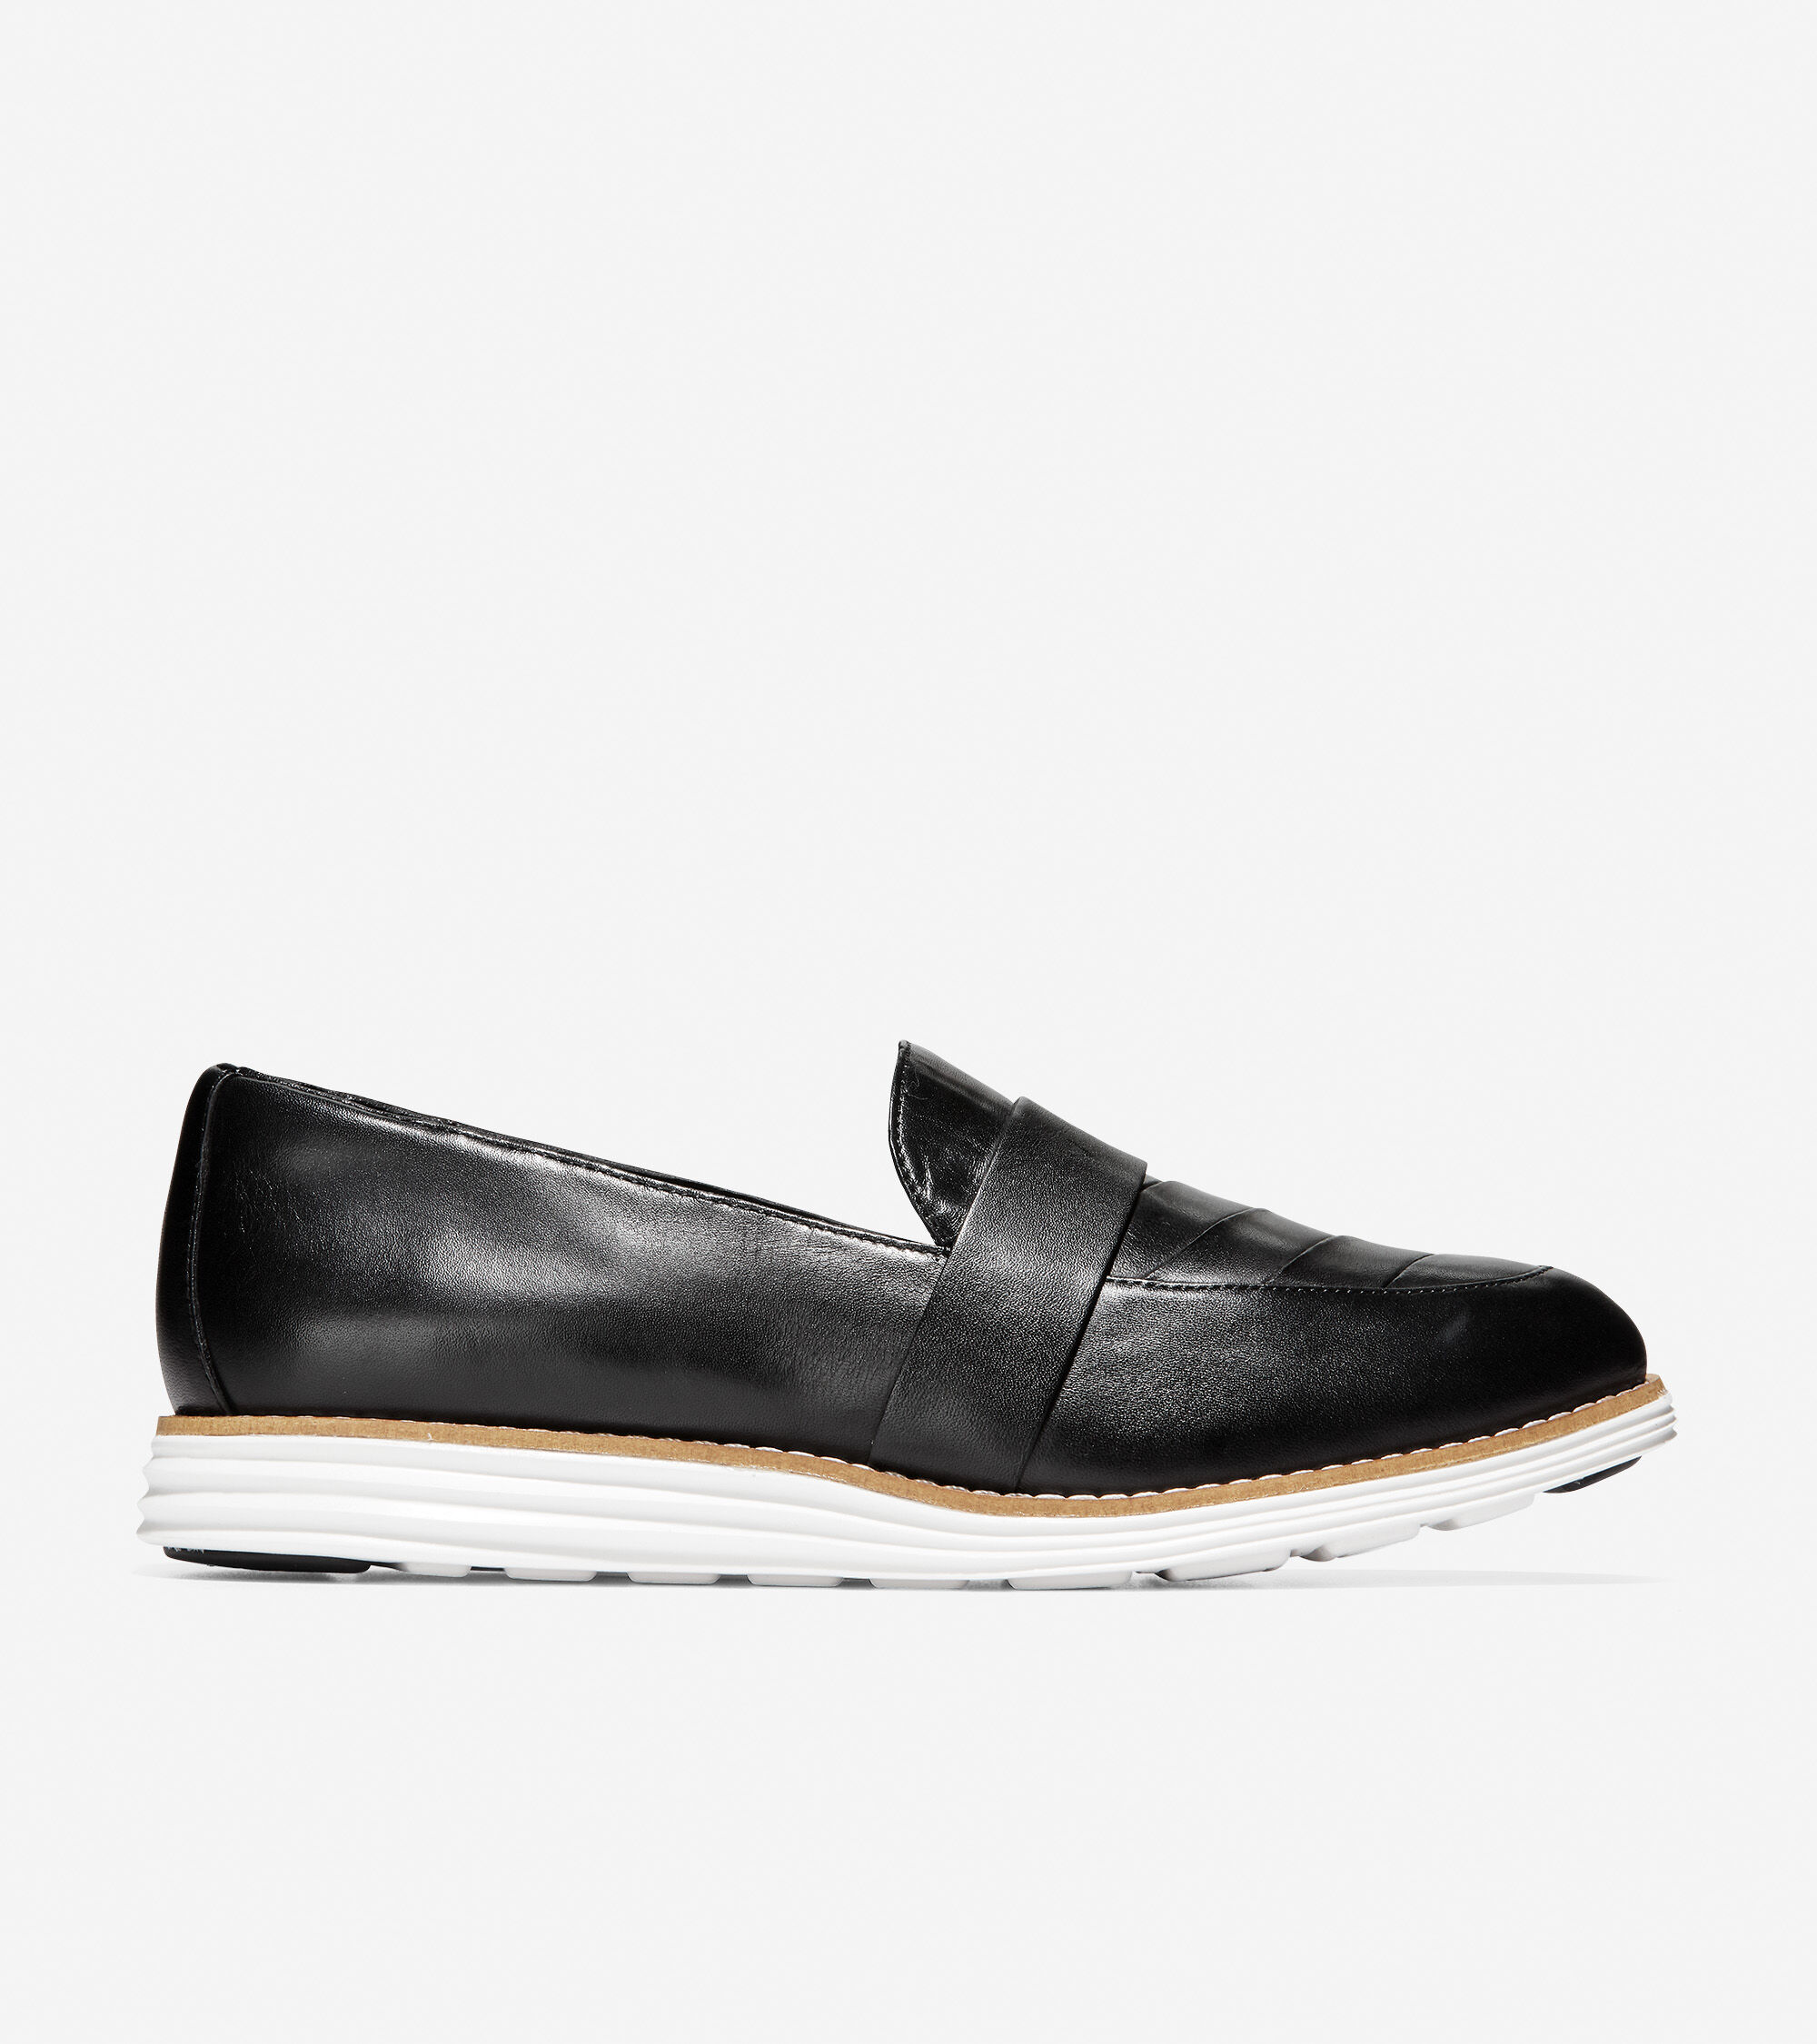 Loafer in Black Leather | Cole Haan